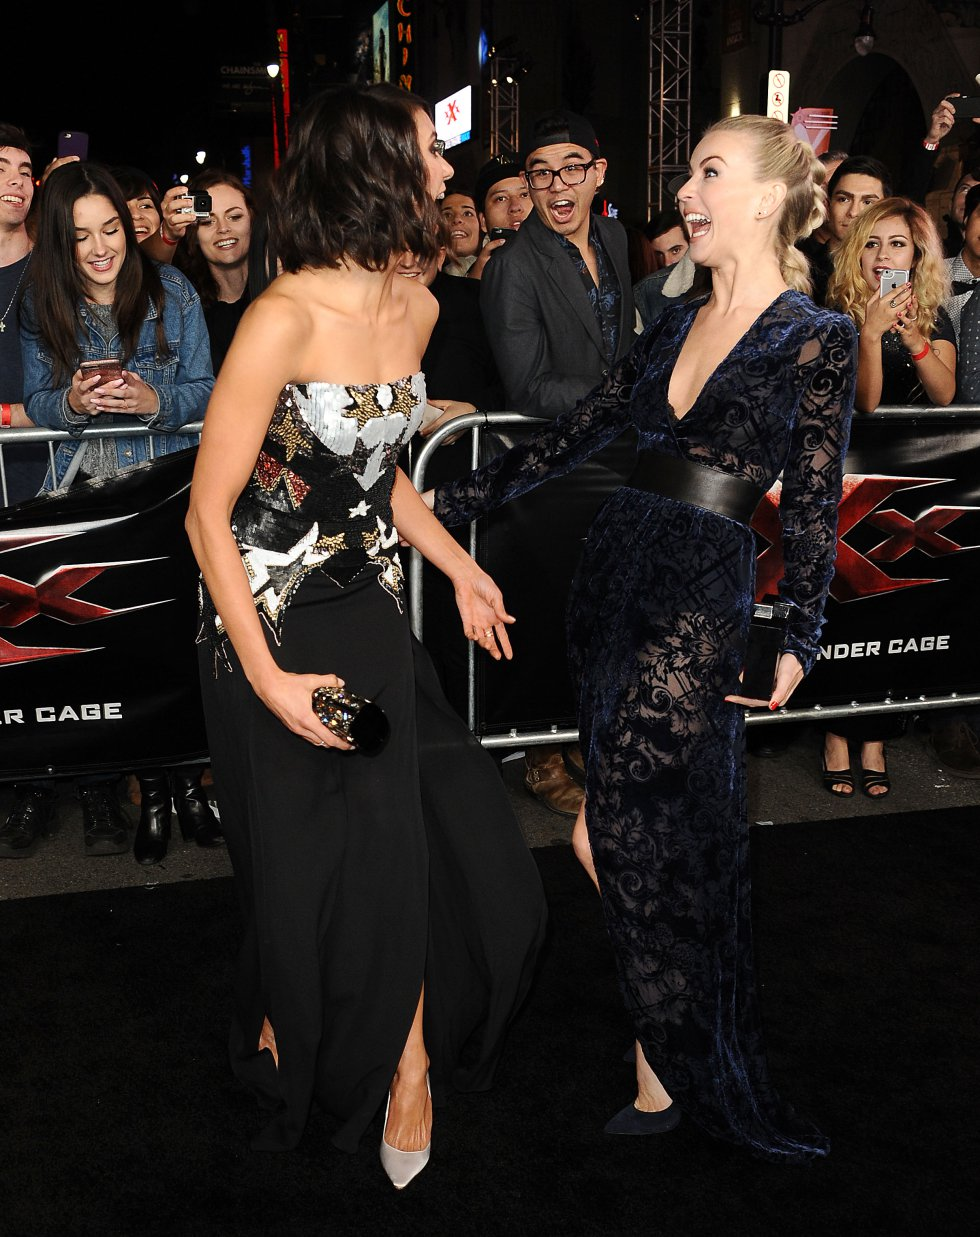 Las actrices Nina Dobrev y Julianne Hough en la premier 'xXx: Return of Xander Cage'.